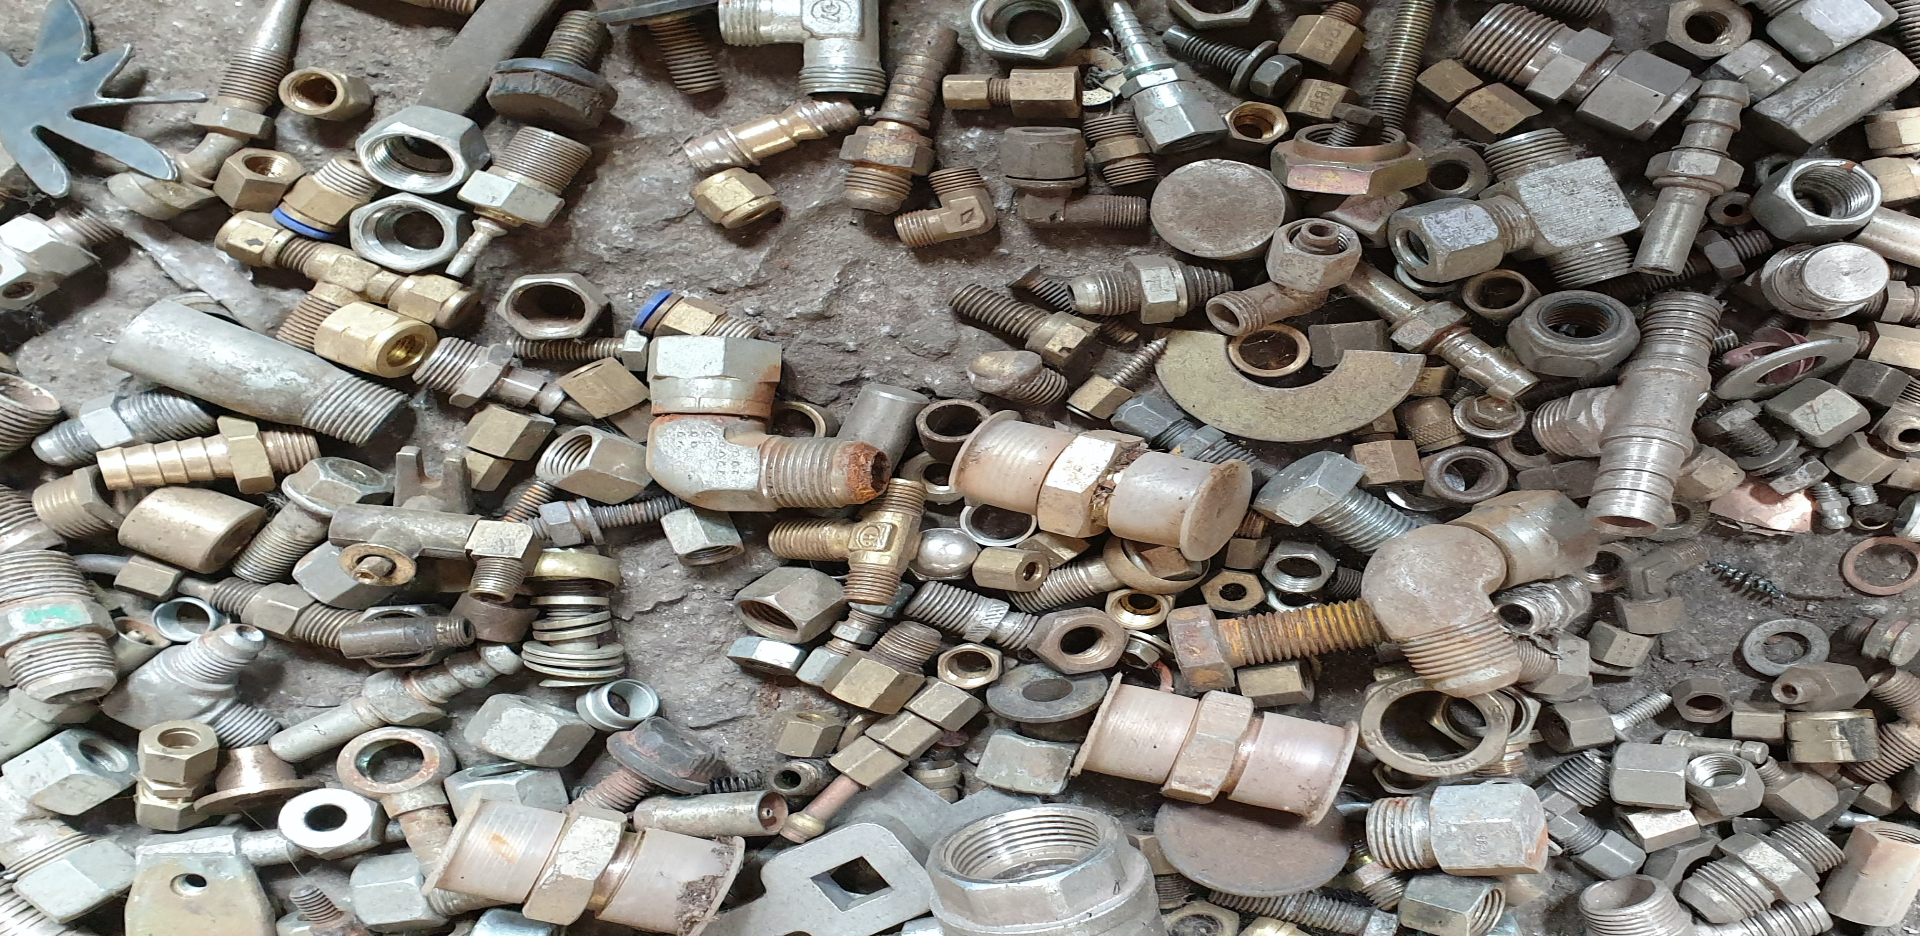 Image of Nuts and Bolts